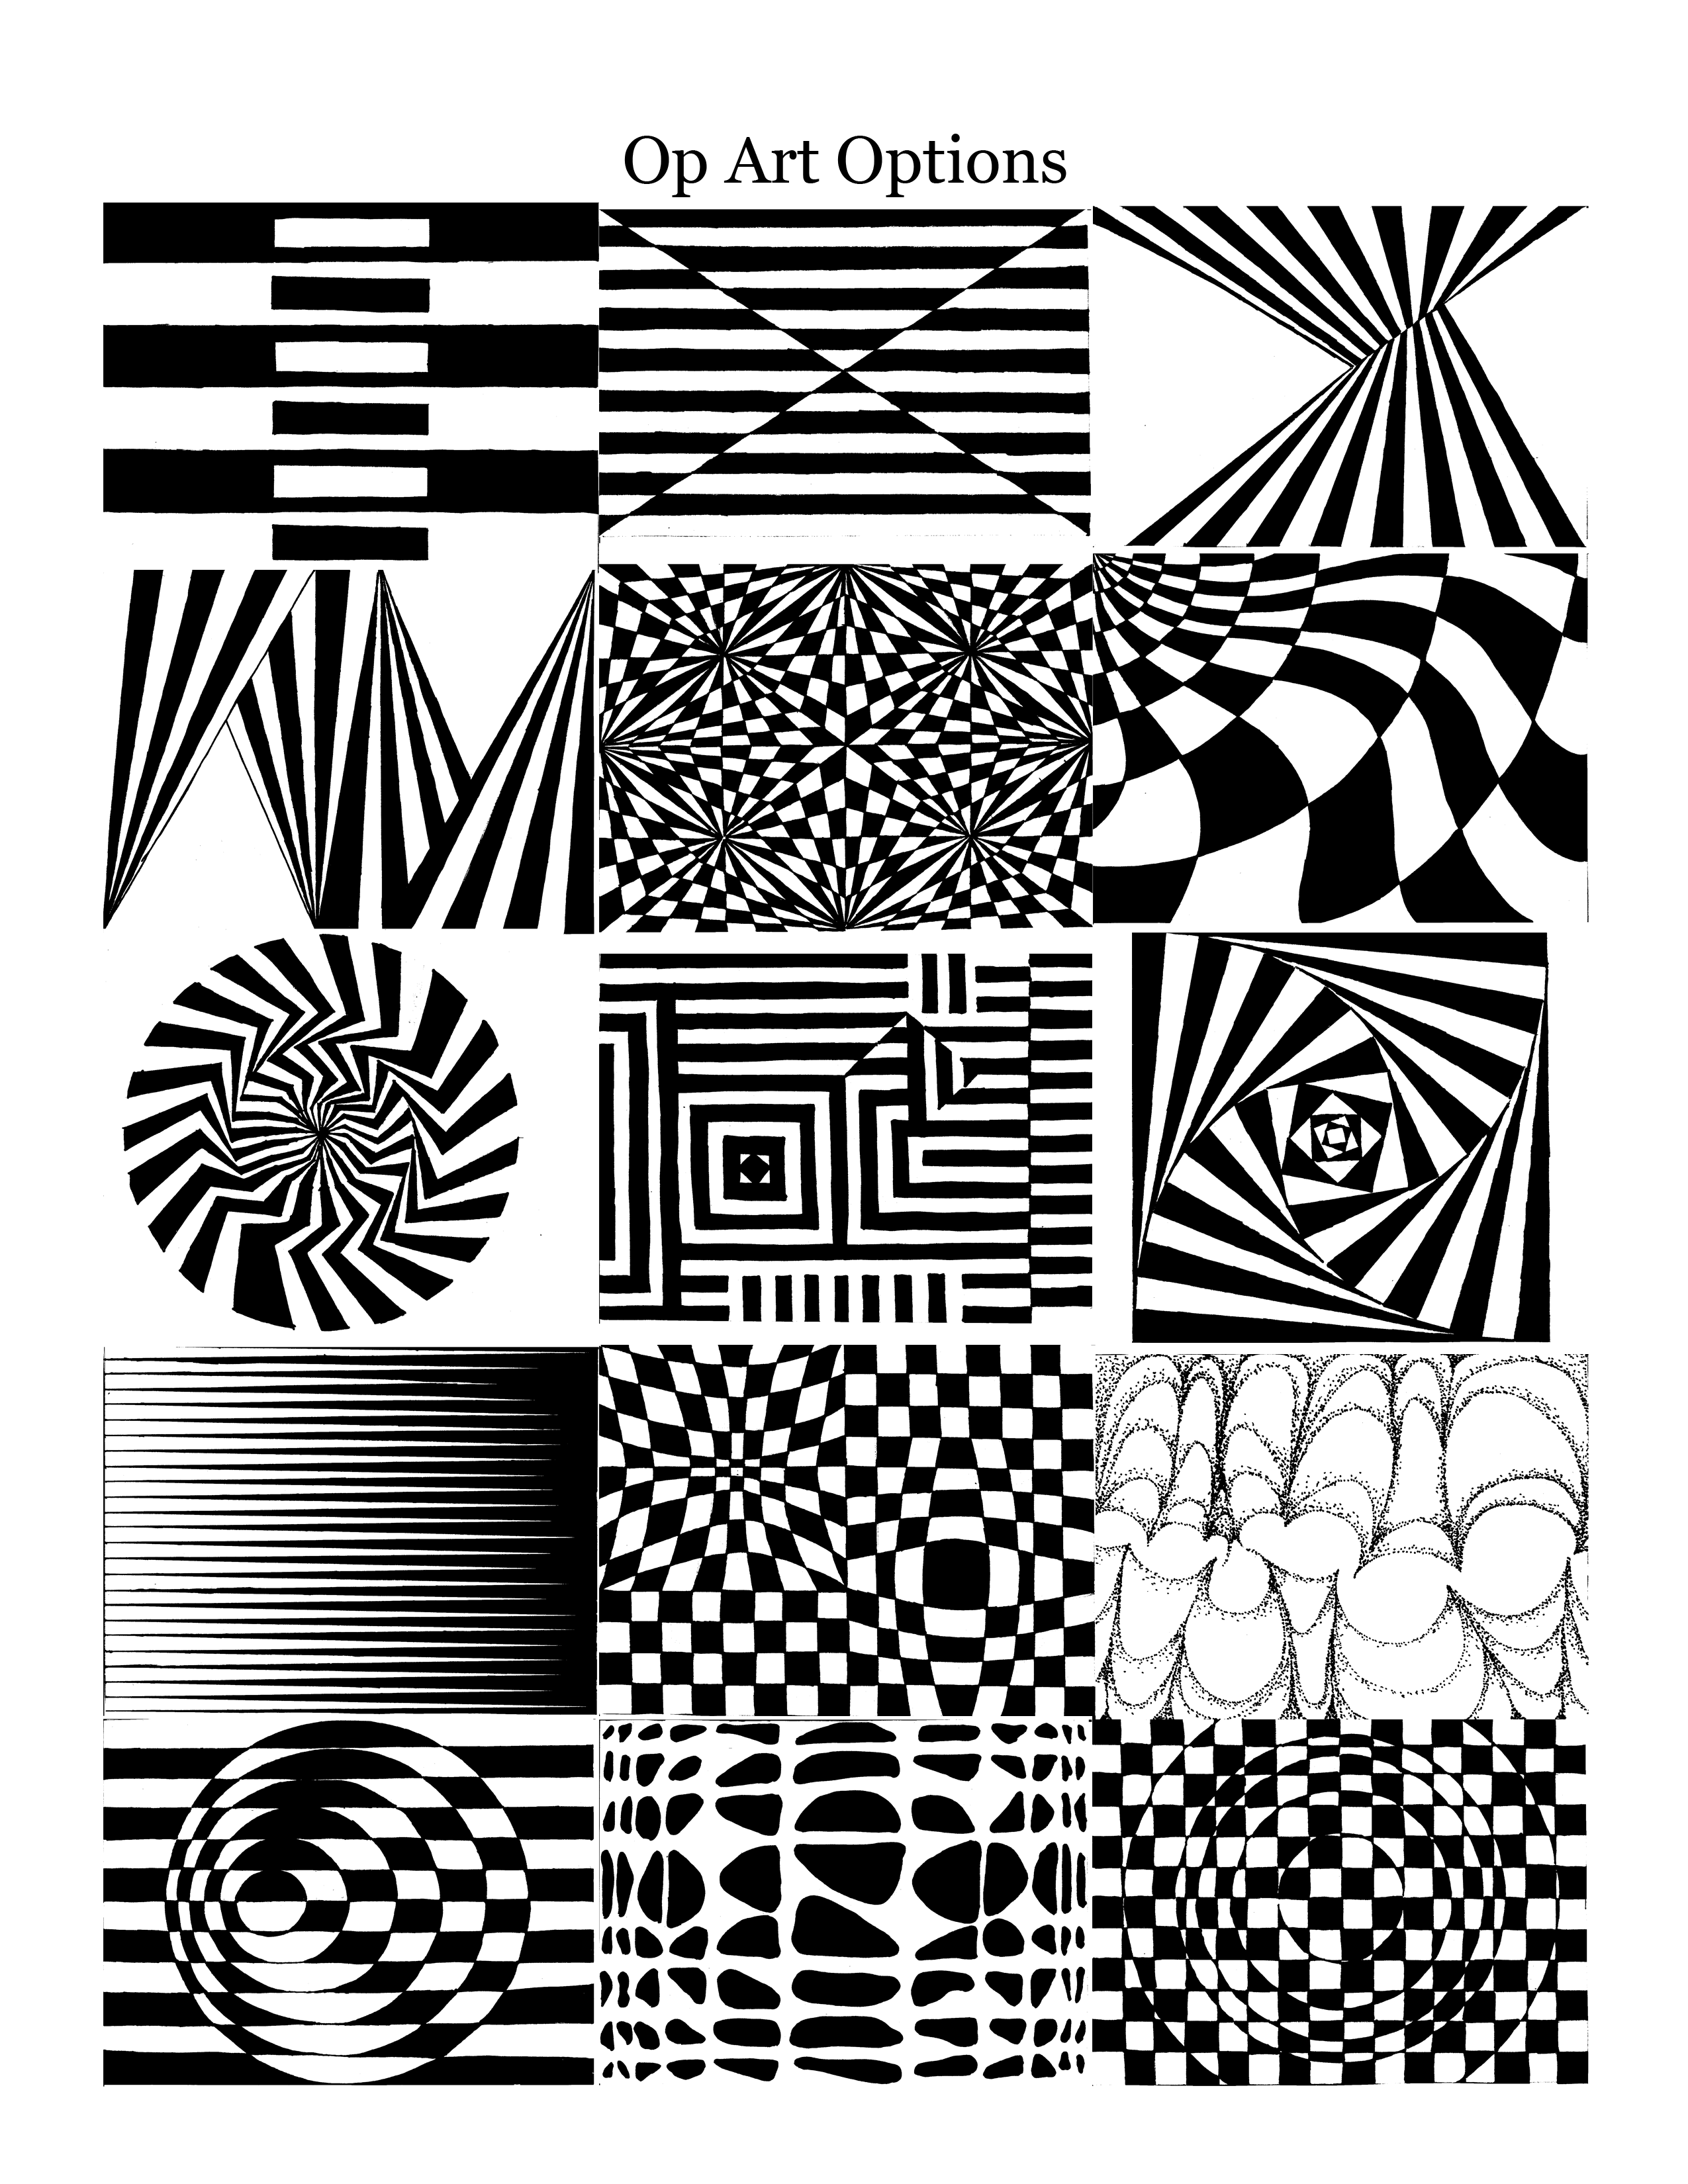 Art Handouts And Worksheets : Best images of op art worksheets printable how to step